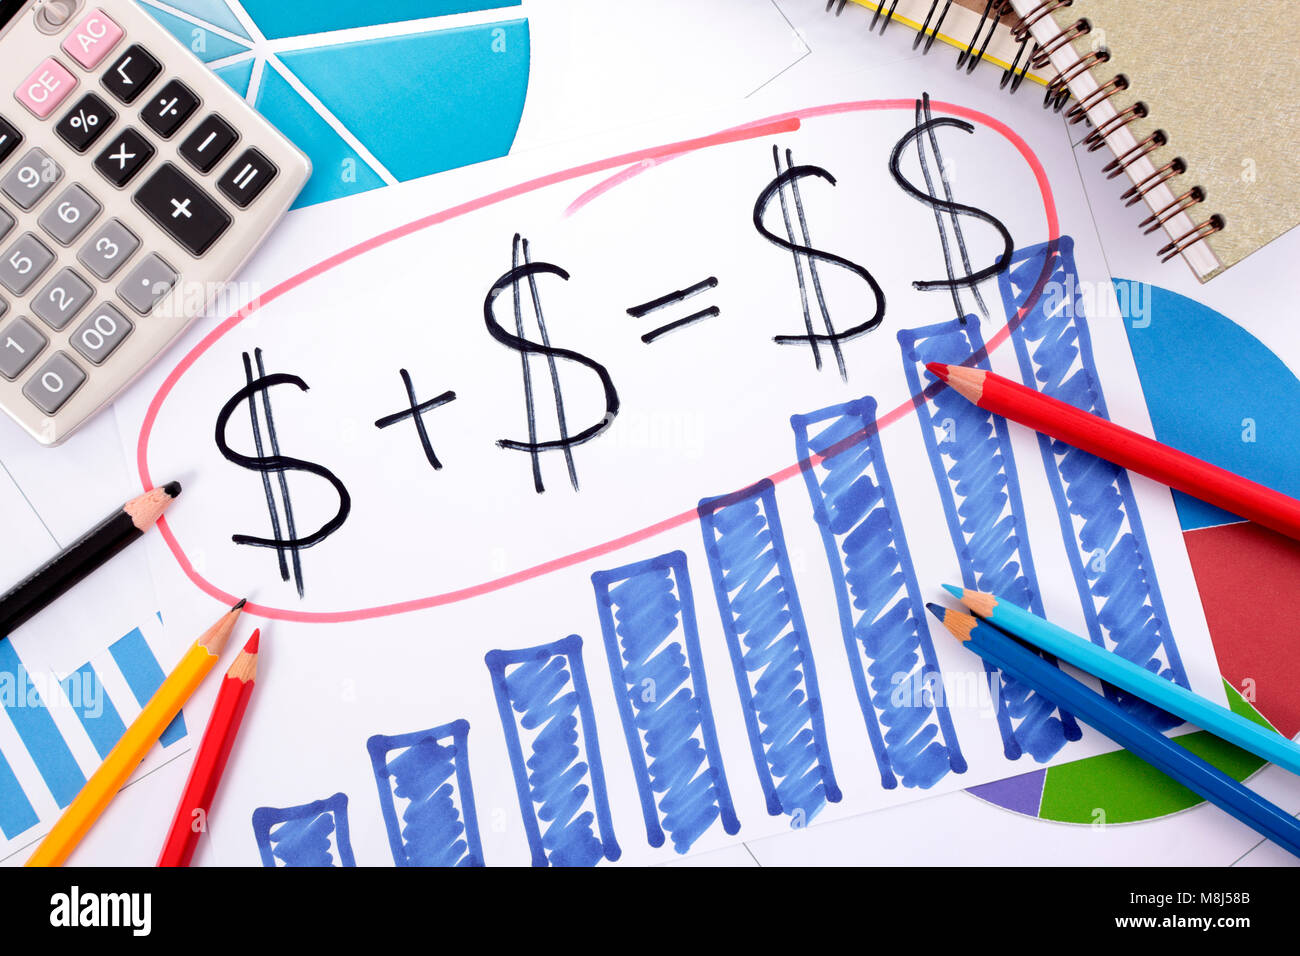 Simple savings or retirement formula written on a hand drawn bar simple savings or retirement formula written on a hand drawn bar chart surrounded by calculator books and pencils ccuart Gallery